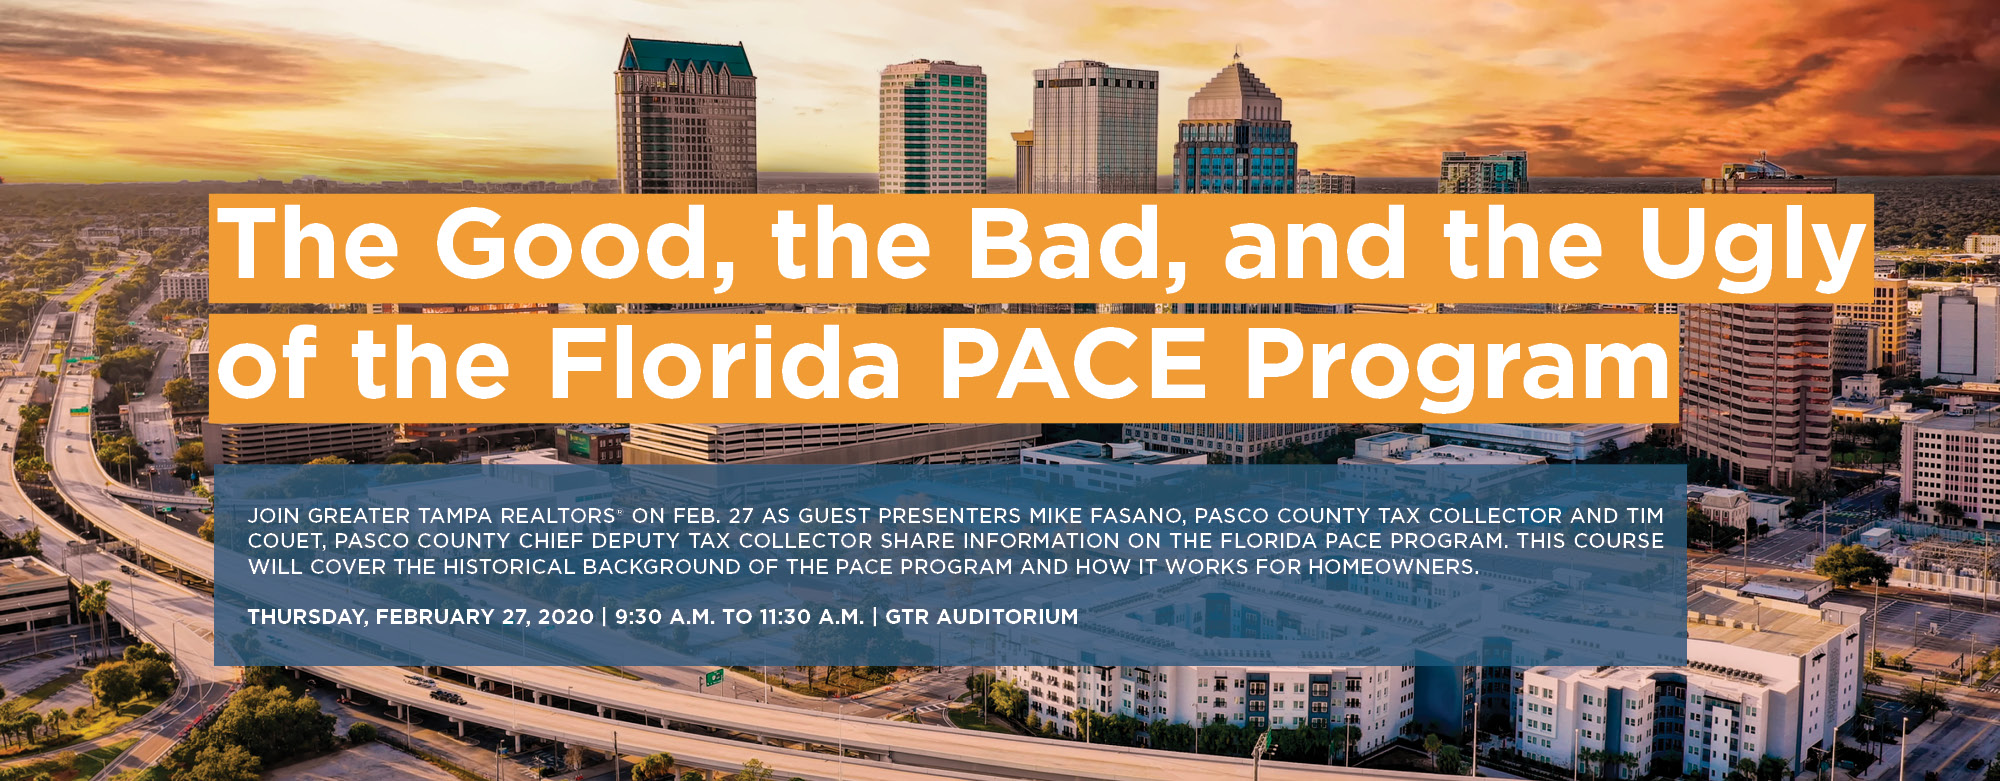 The Good, the Bad, and the Ugly of the Florida PACE Program